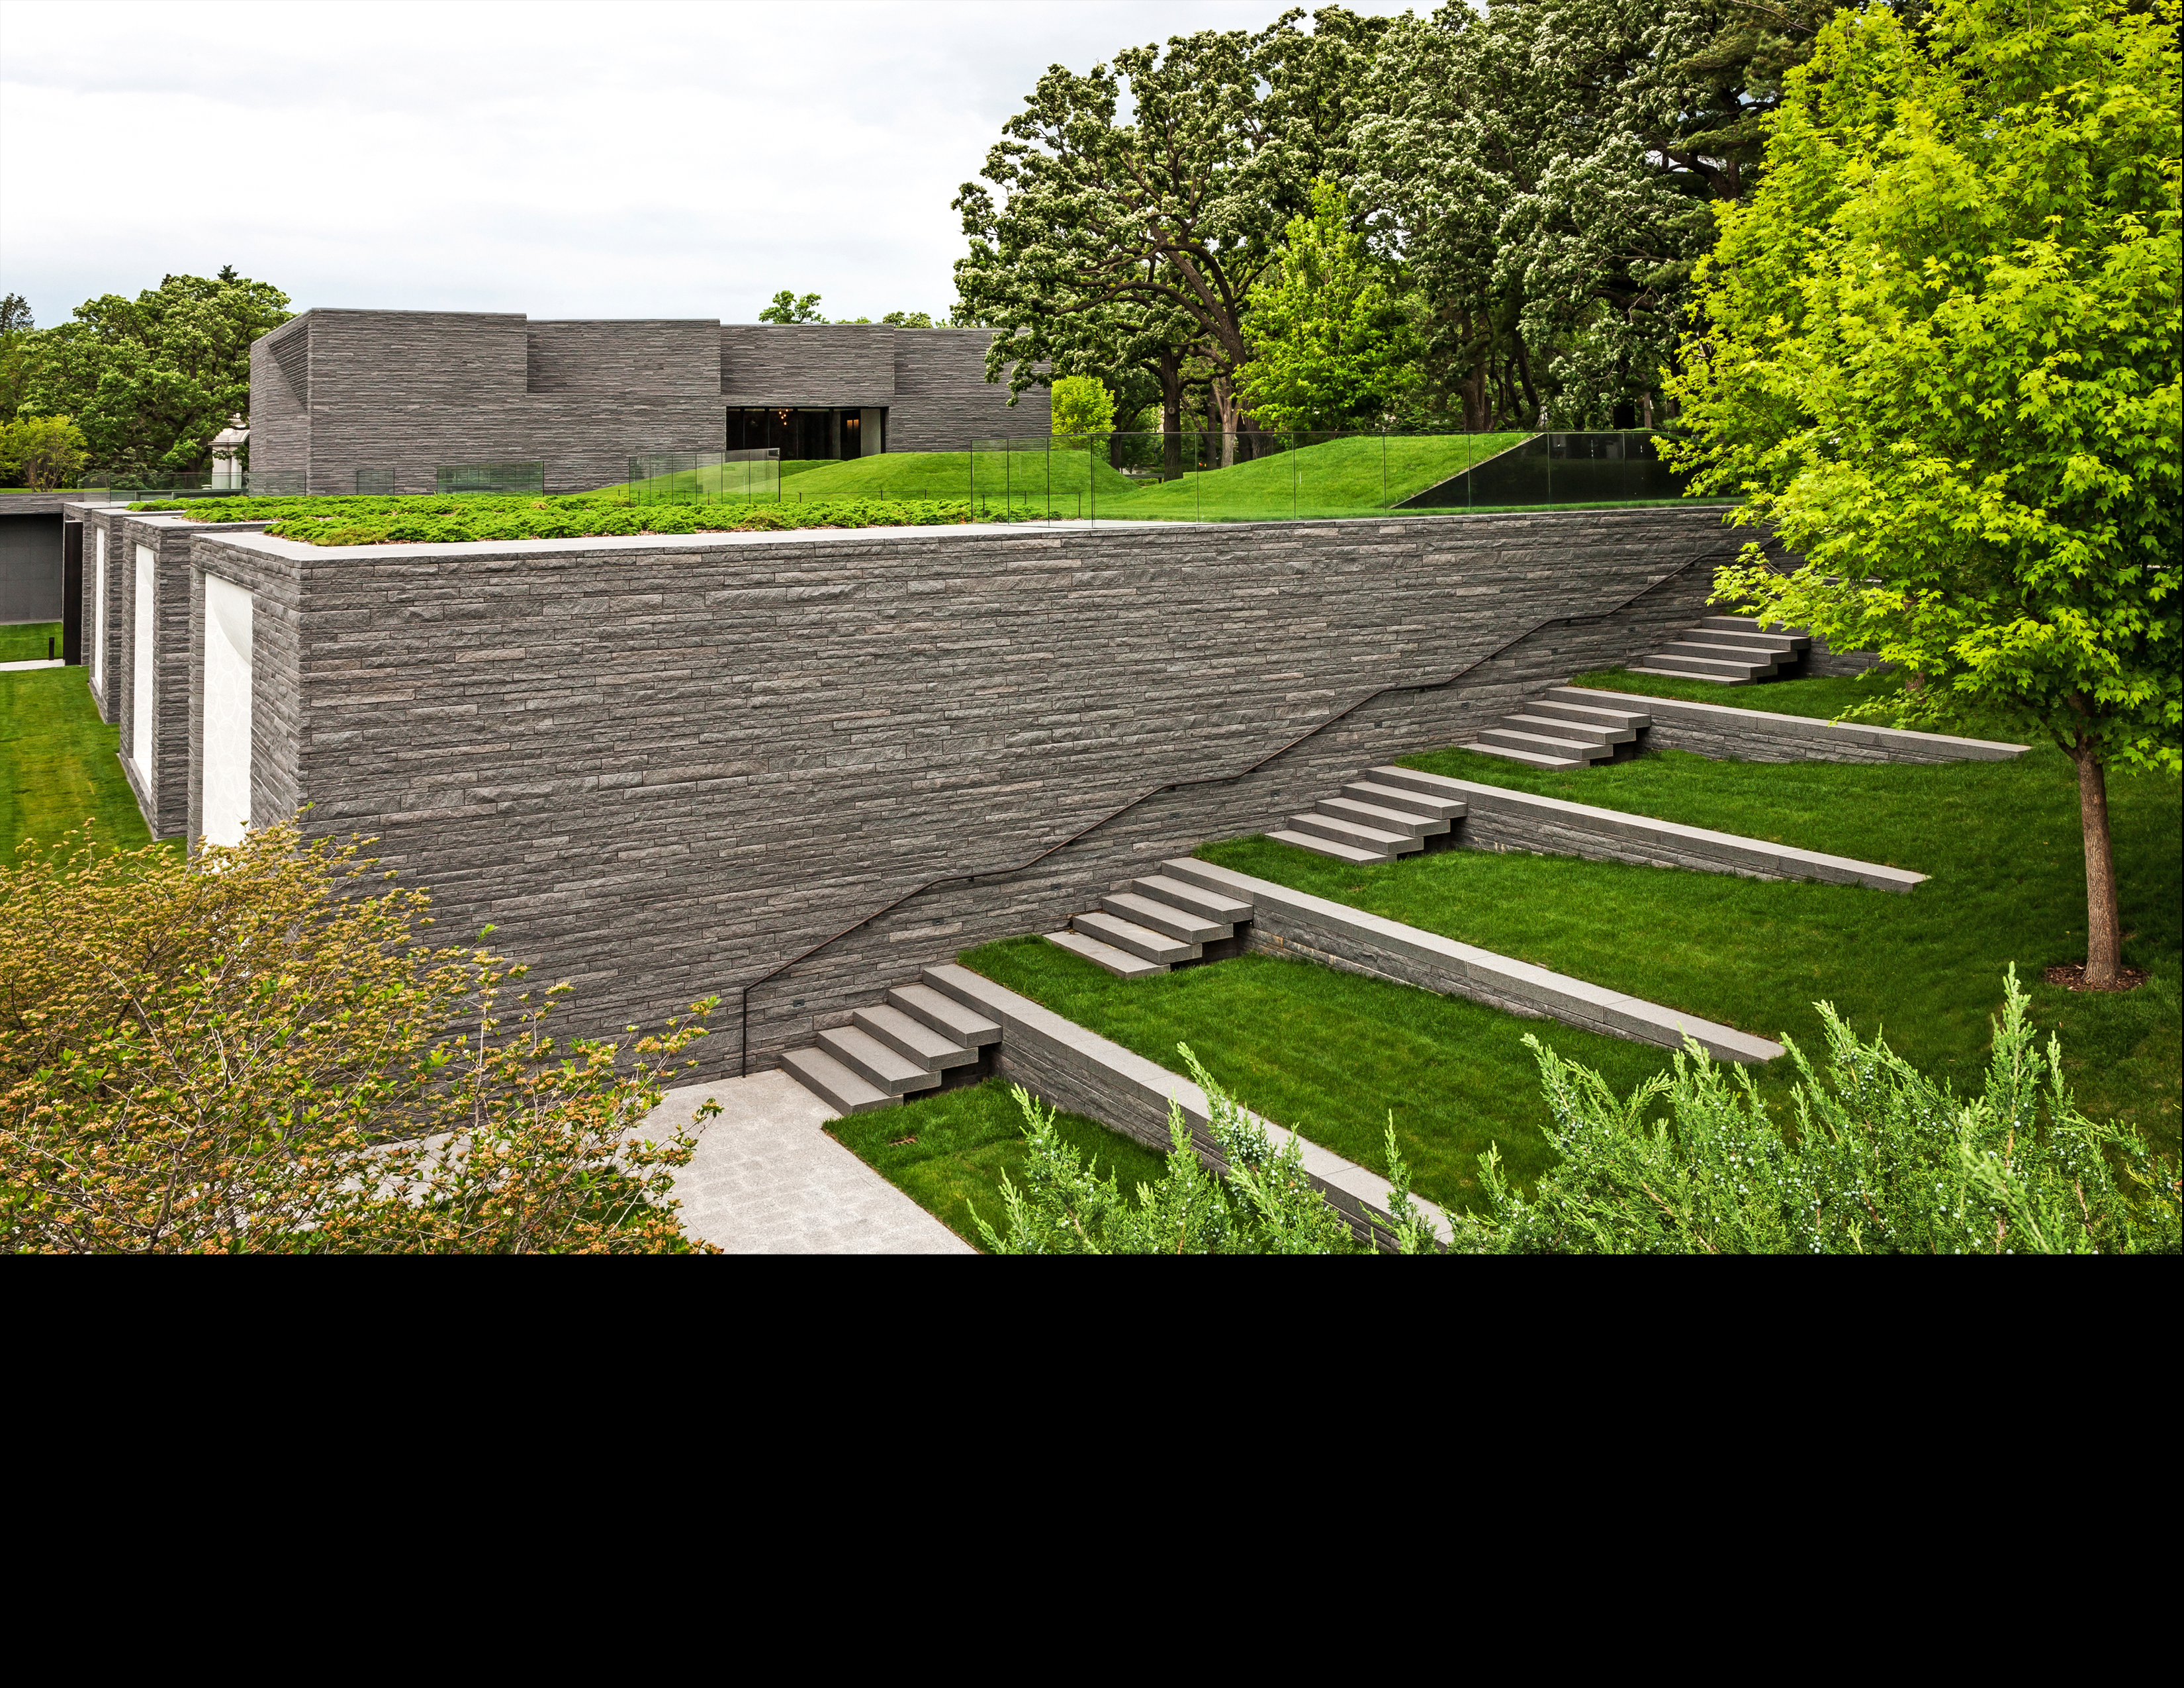 Asla 2013 professional awards lakewood garden mausoleum for Terrace landscape design